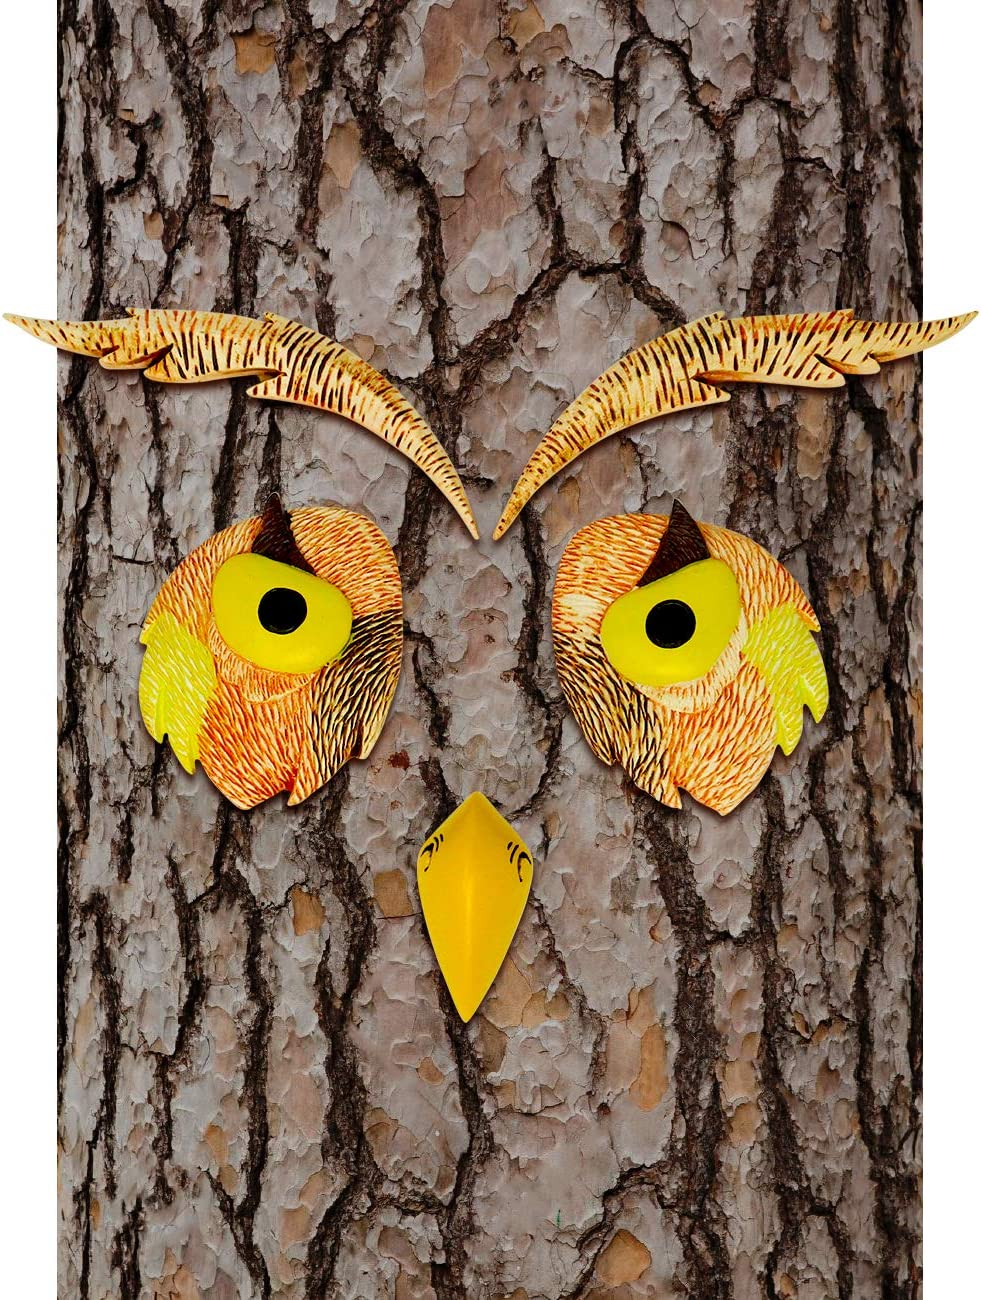 Hilarious Home Owl Face Tree Décor Outdoor Garden Statue